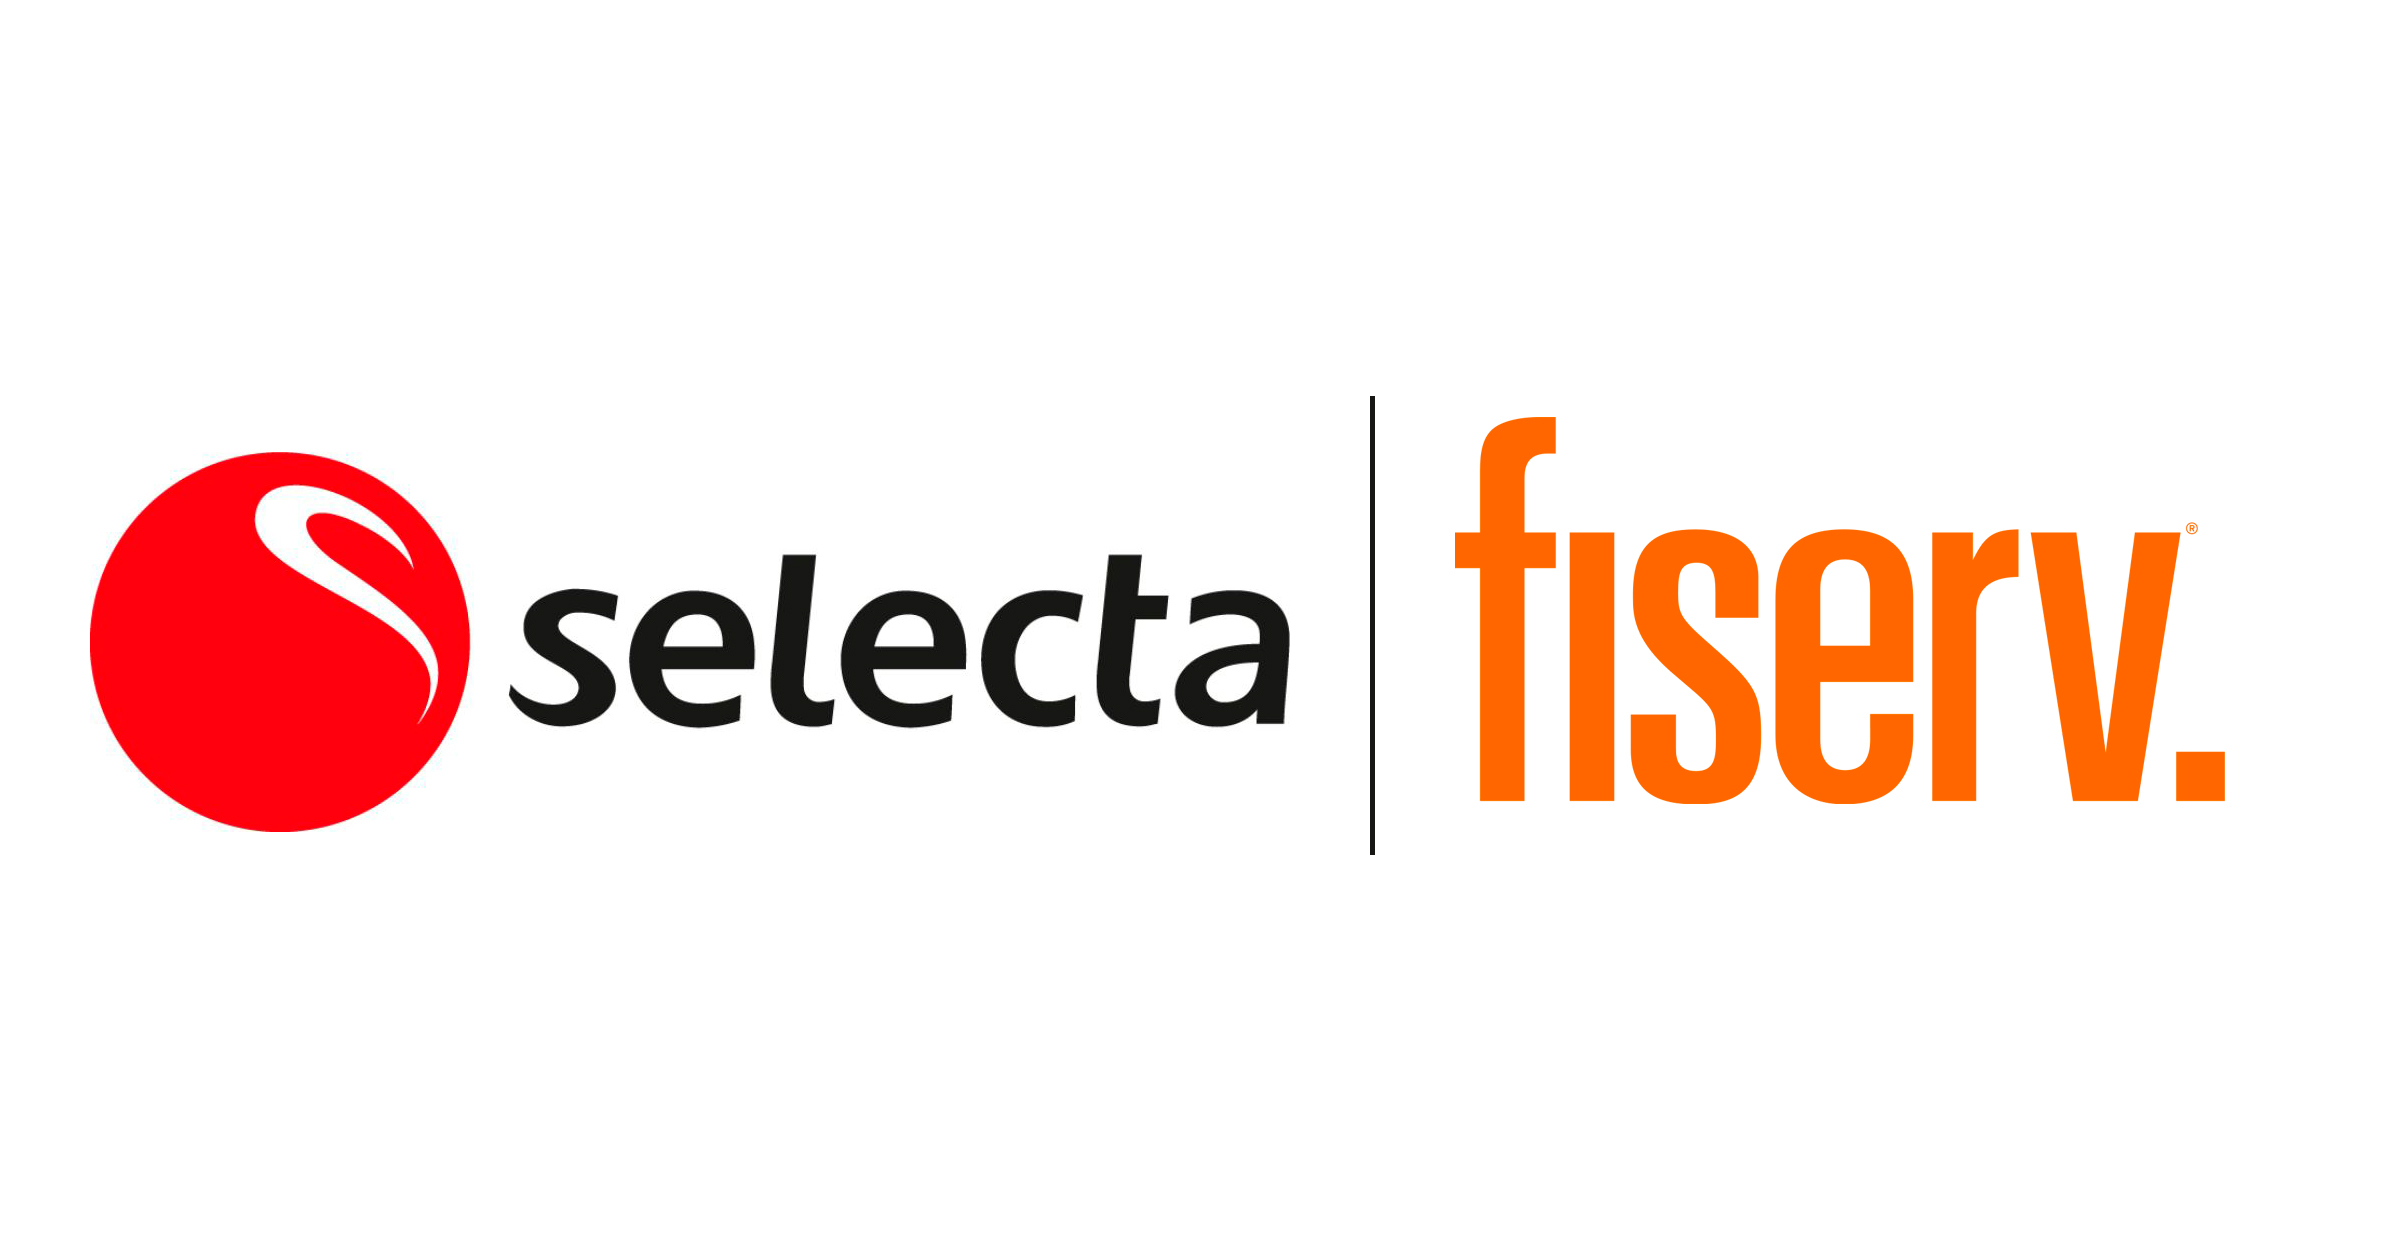 Selecta Group and Fiserv to Roll Out Cashless Payments Across Europe